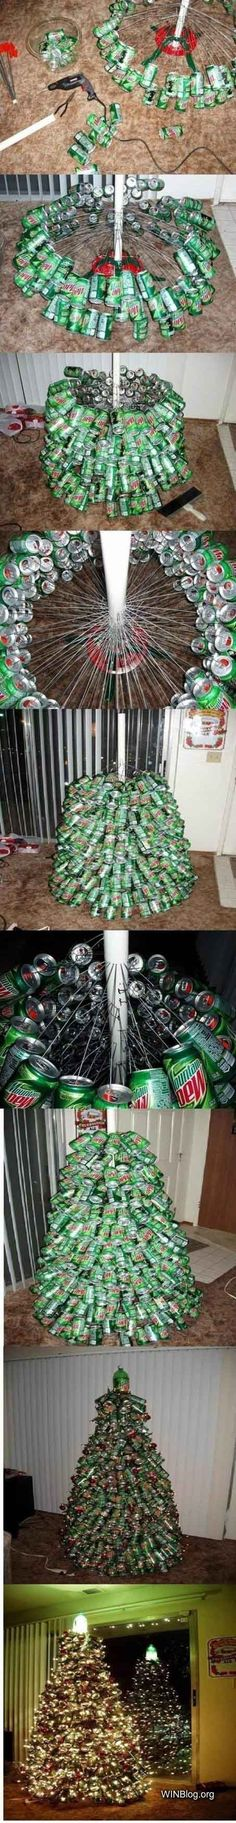 If you drink this much Mt. Dew you have way bigger problems than not being able to afford a real Christmas tree.